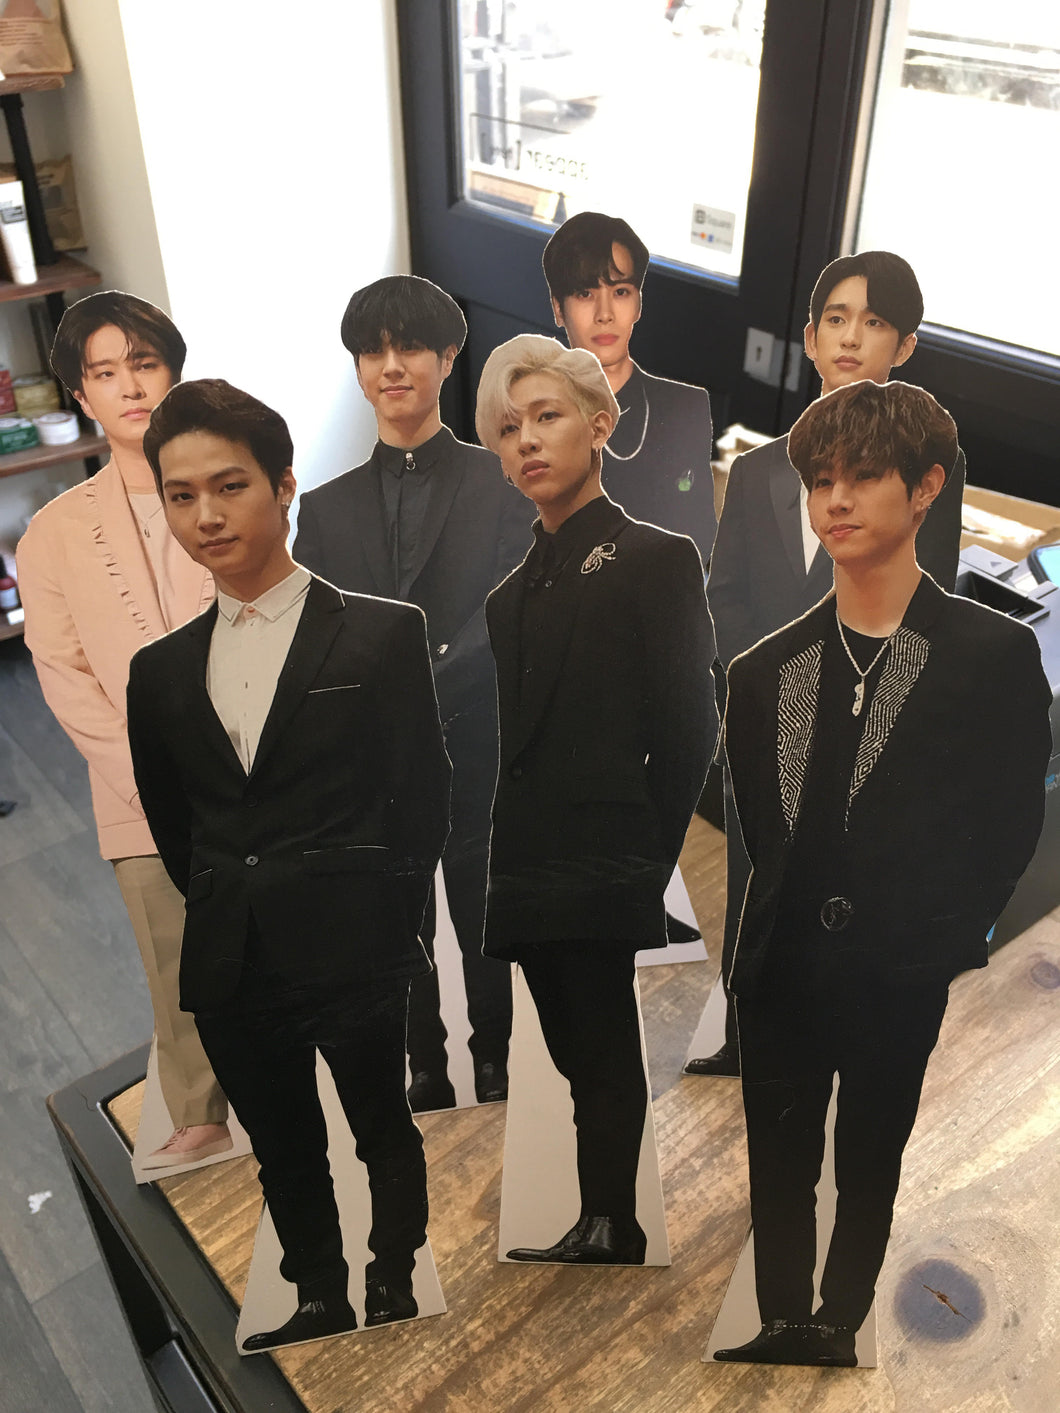 GOT7 mini table-top cutouts / standees